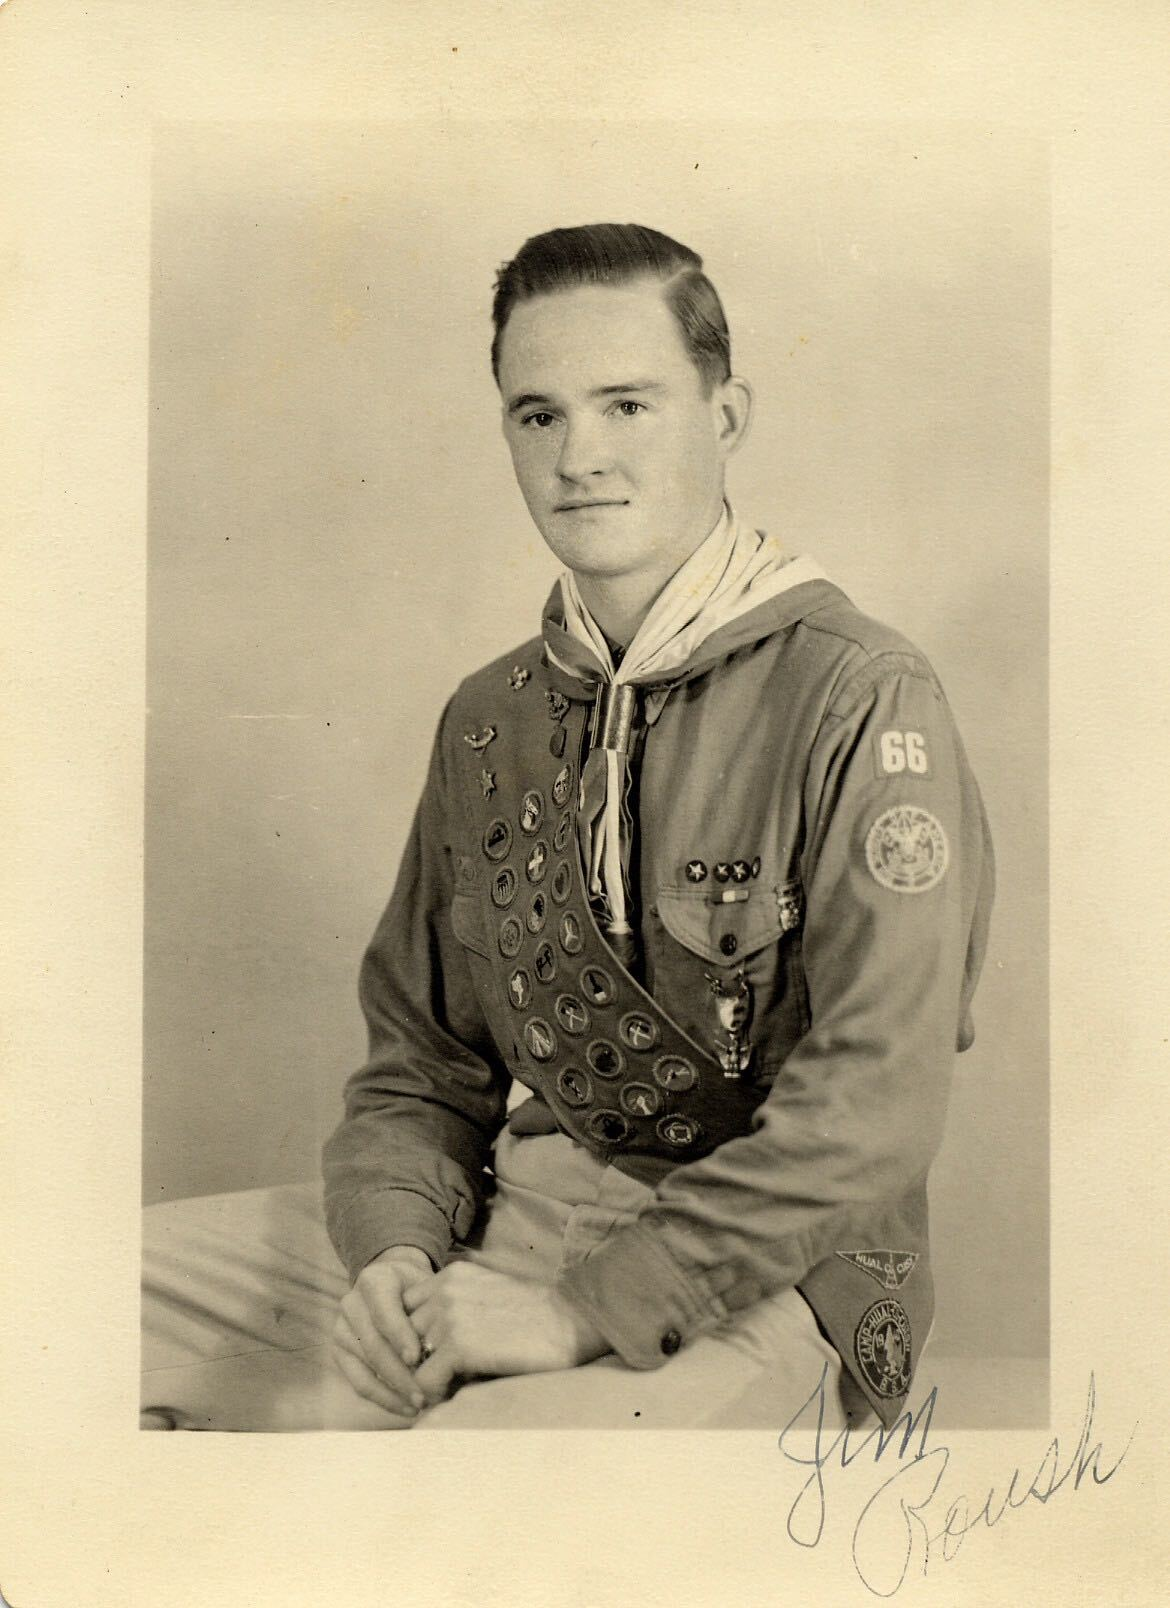 My grandfather, James Chester Roush, in his Eagle Scout uniform